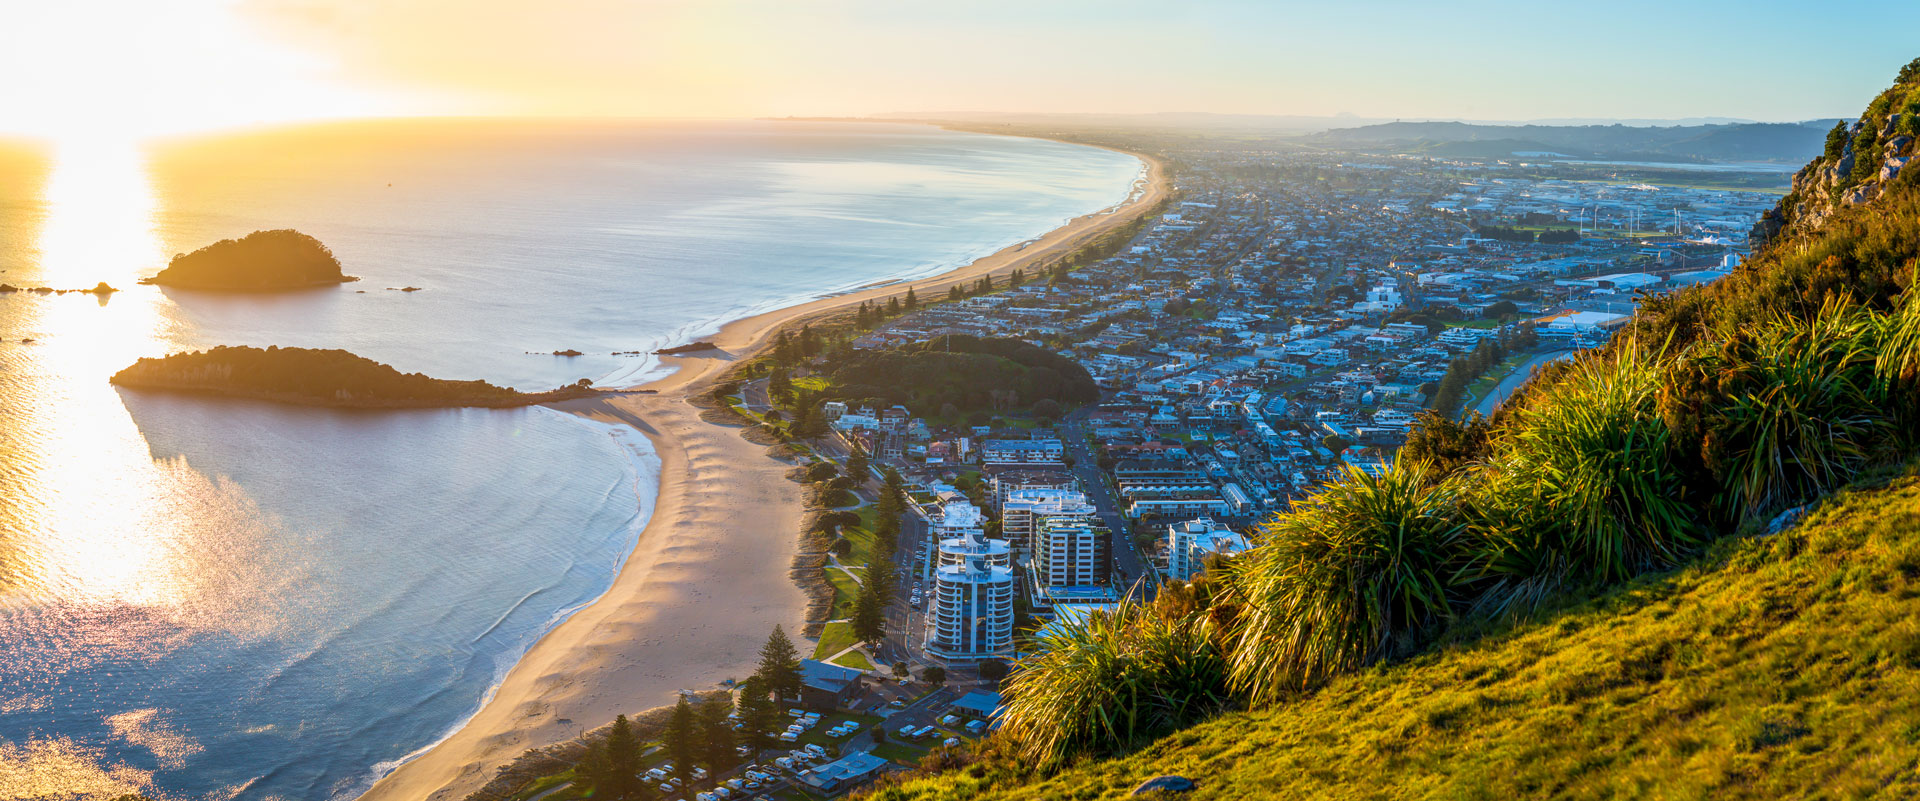 The Pineapple is based in Tauranga near Mount Maunganui and supplies Arizer Vapes, DynaVap Vapes, PAX Vapes, SLX Grinders, and Storz & Bickel Vapes